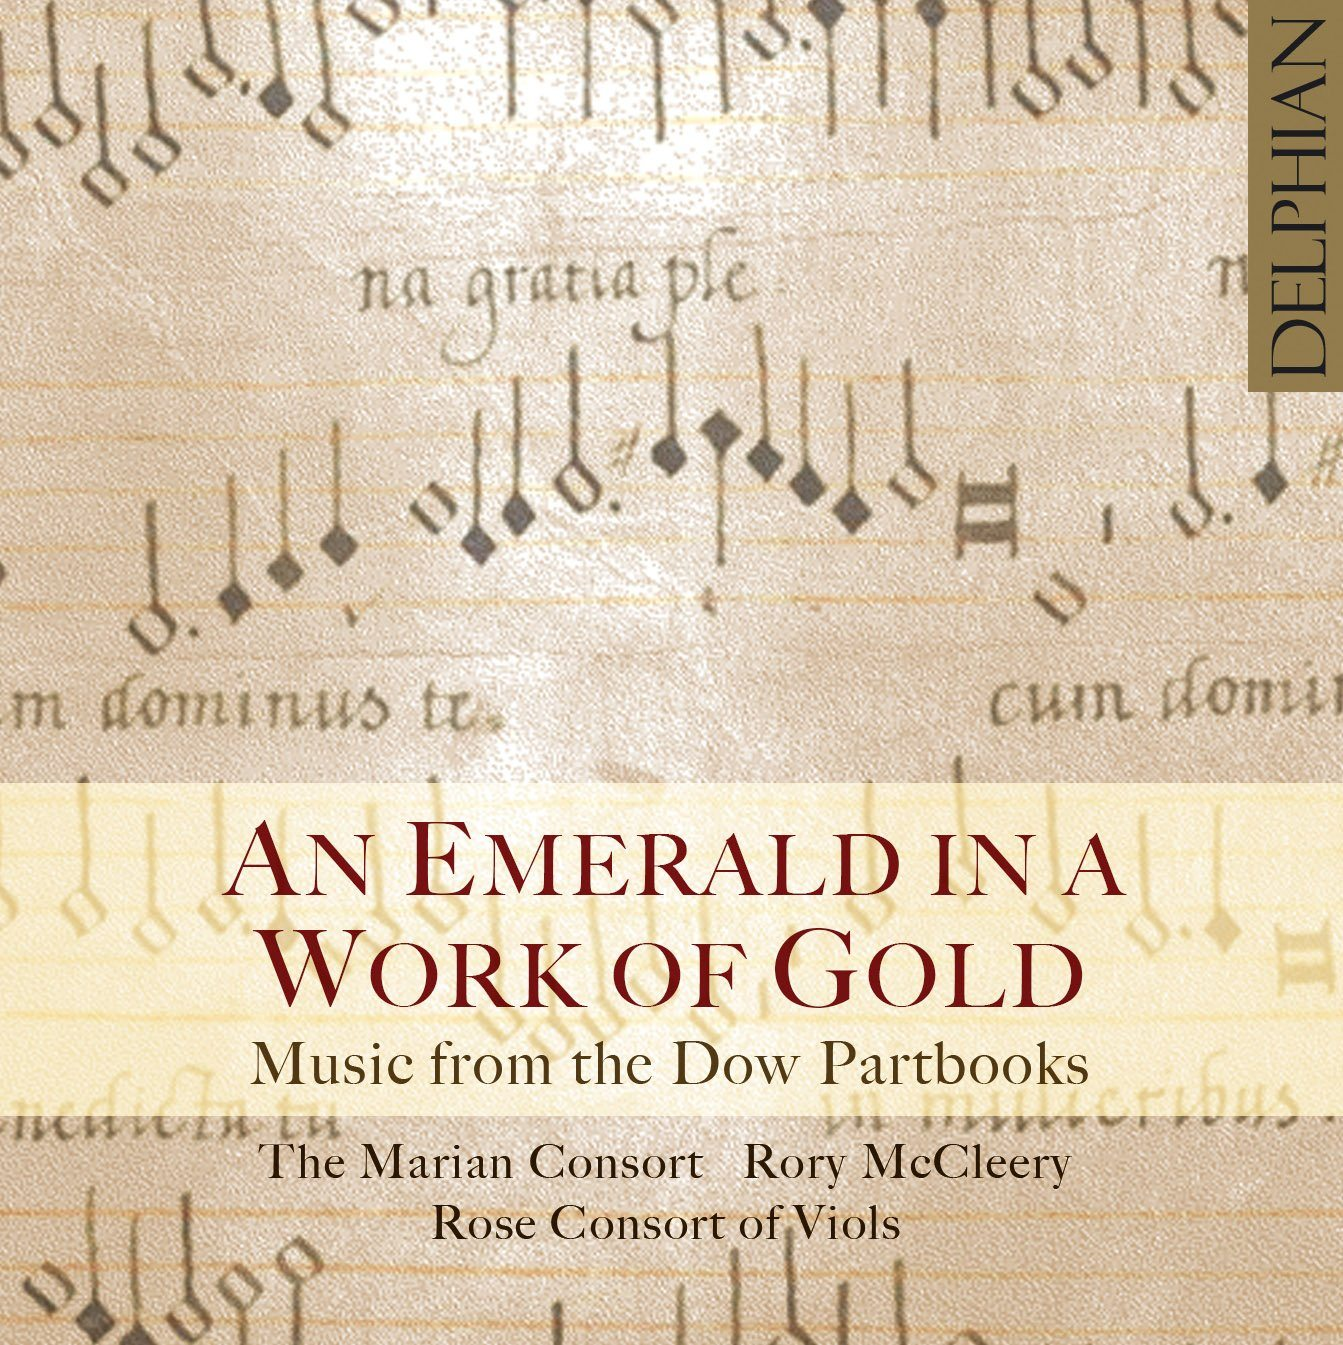 An Emerald in a Work of Gold: Music from the Dow Partbooks CD Delphian Records